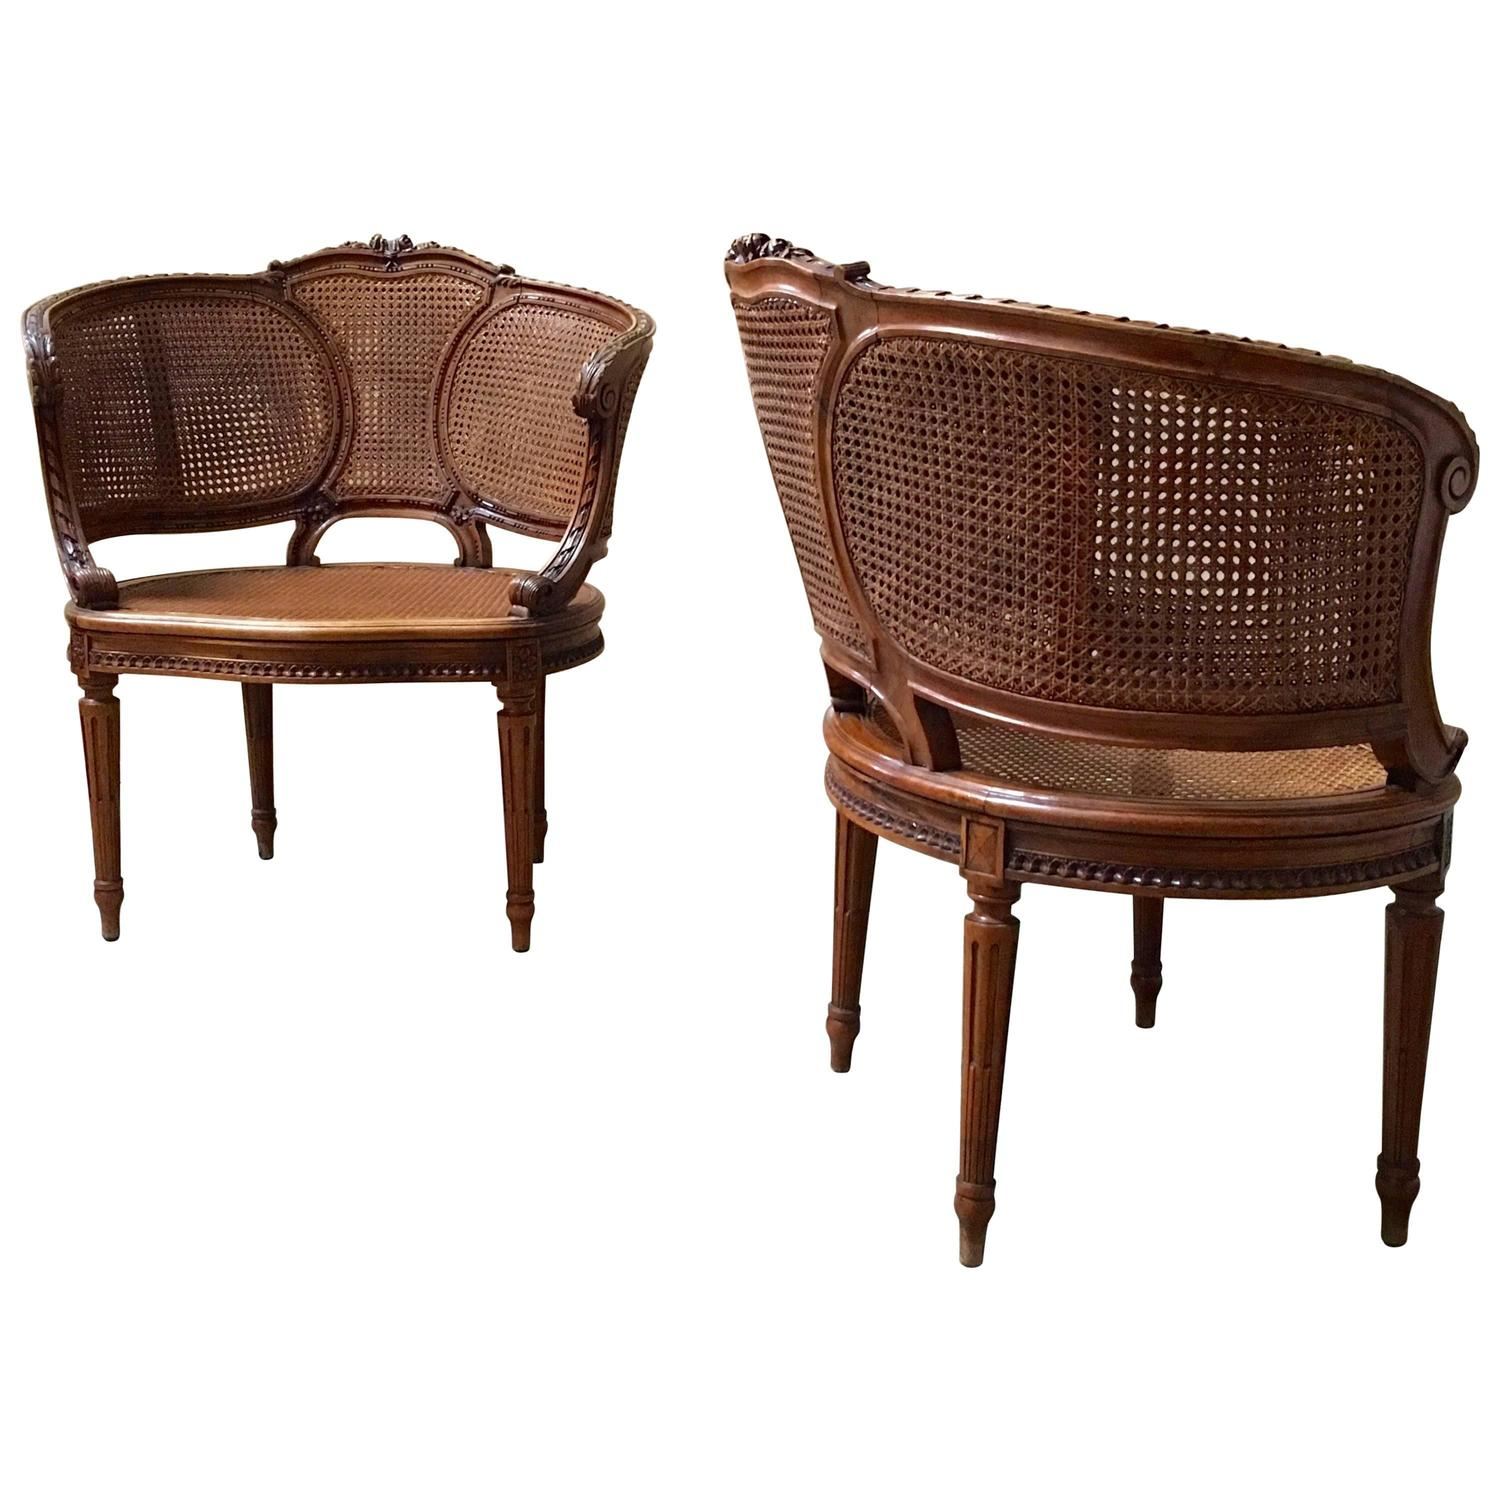 Louis XVI Style Double Cane Chairs For Sale at 1stdibs